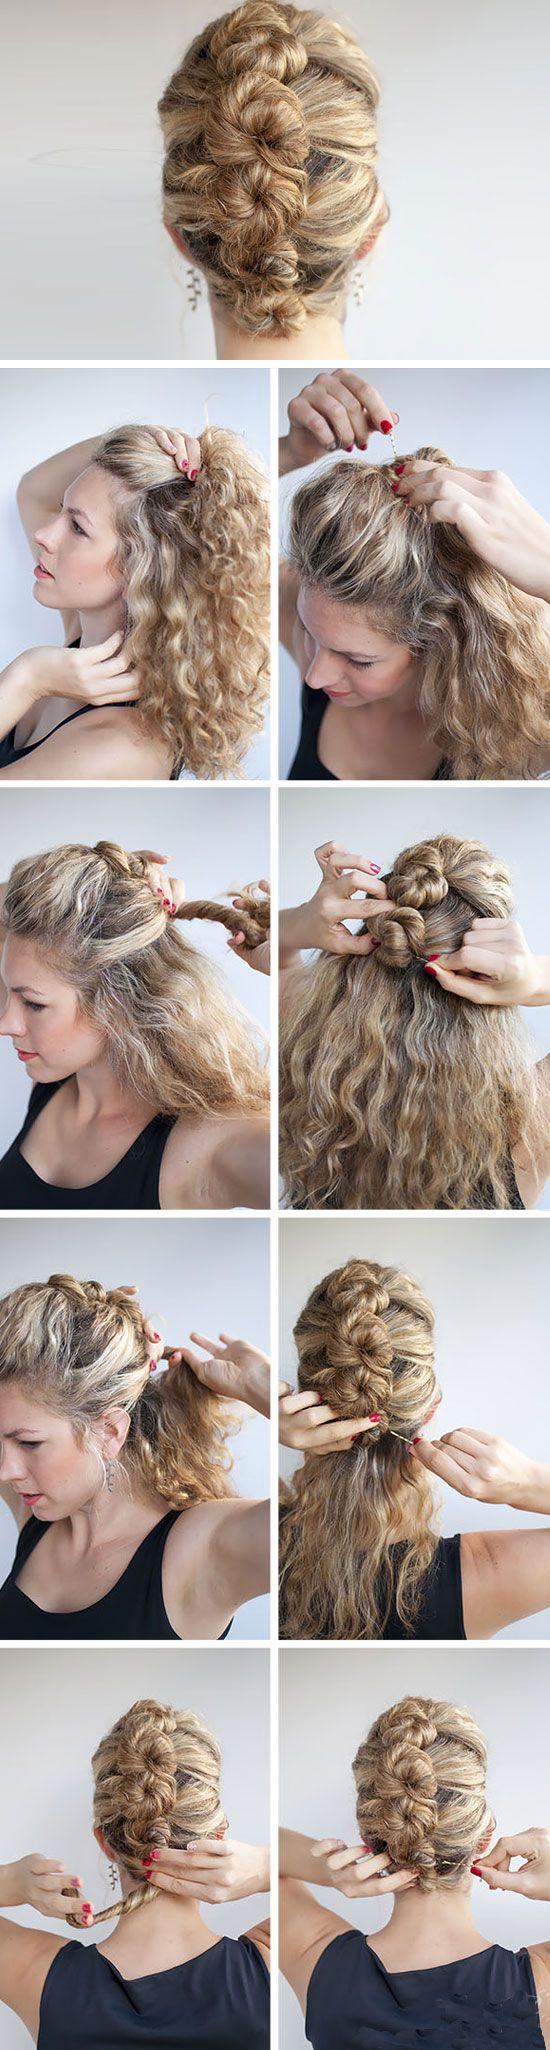 15 best images about hair on pinterest the french roll twist and pin click pic for 12 diy wedding hairstyles for medium solutioingenieria Image collections